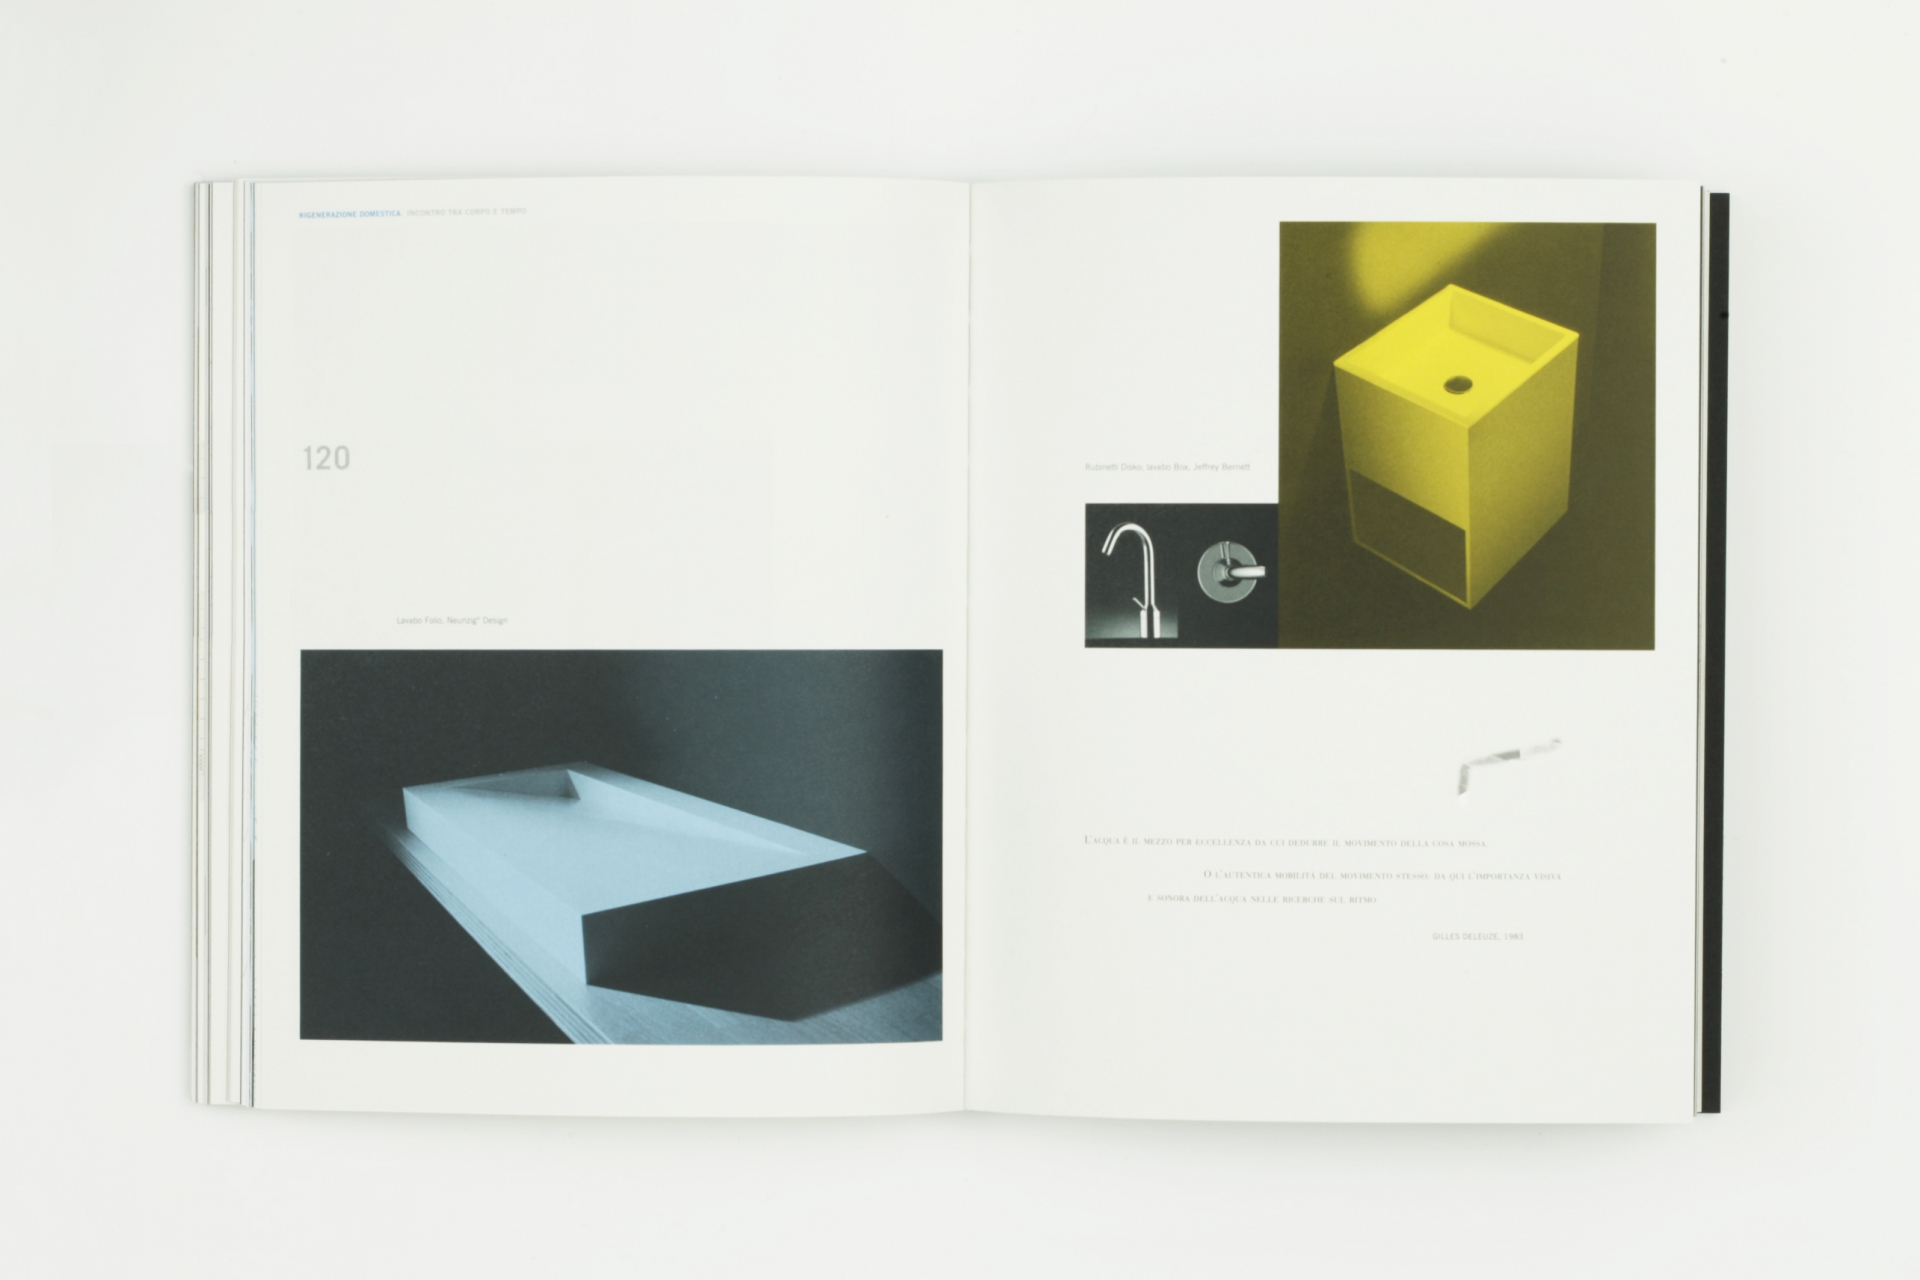 BOFFI BOOK / STUDIO LISSONI